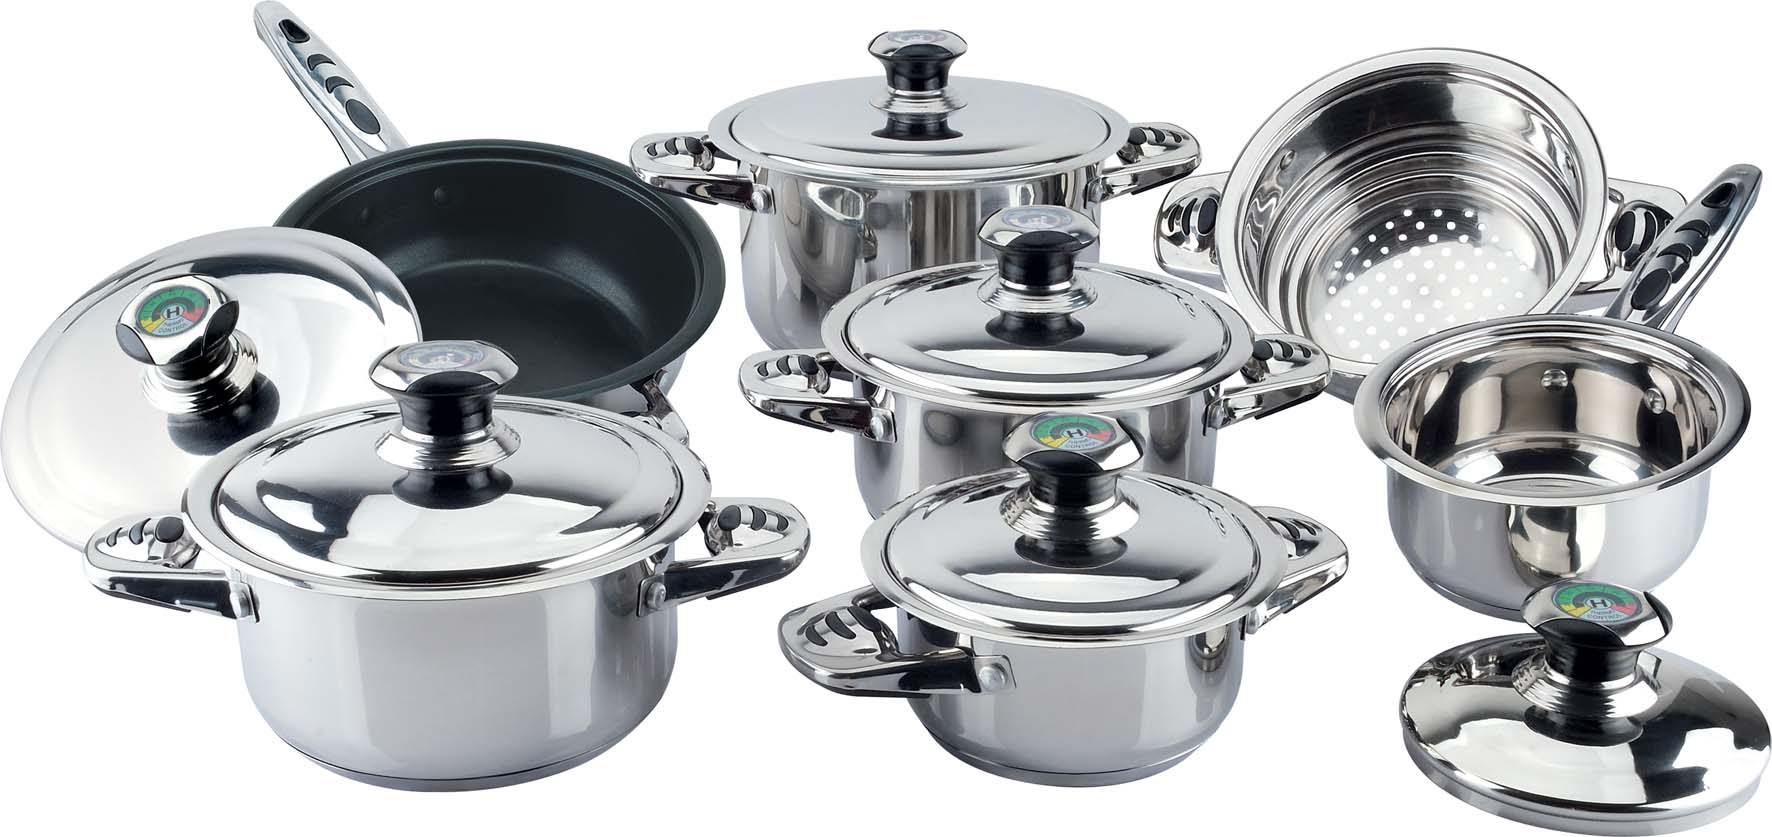 Metal travel kitchenware sets